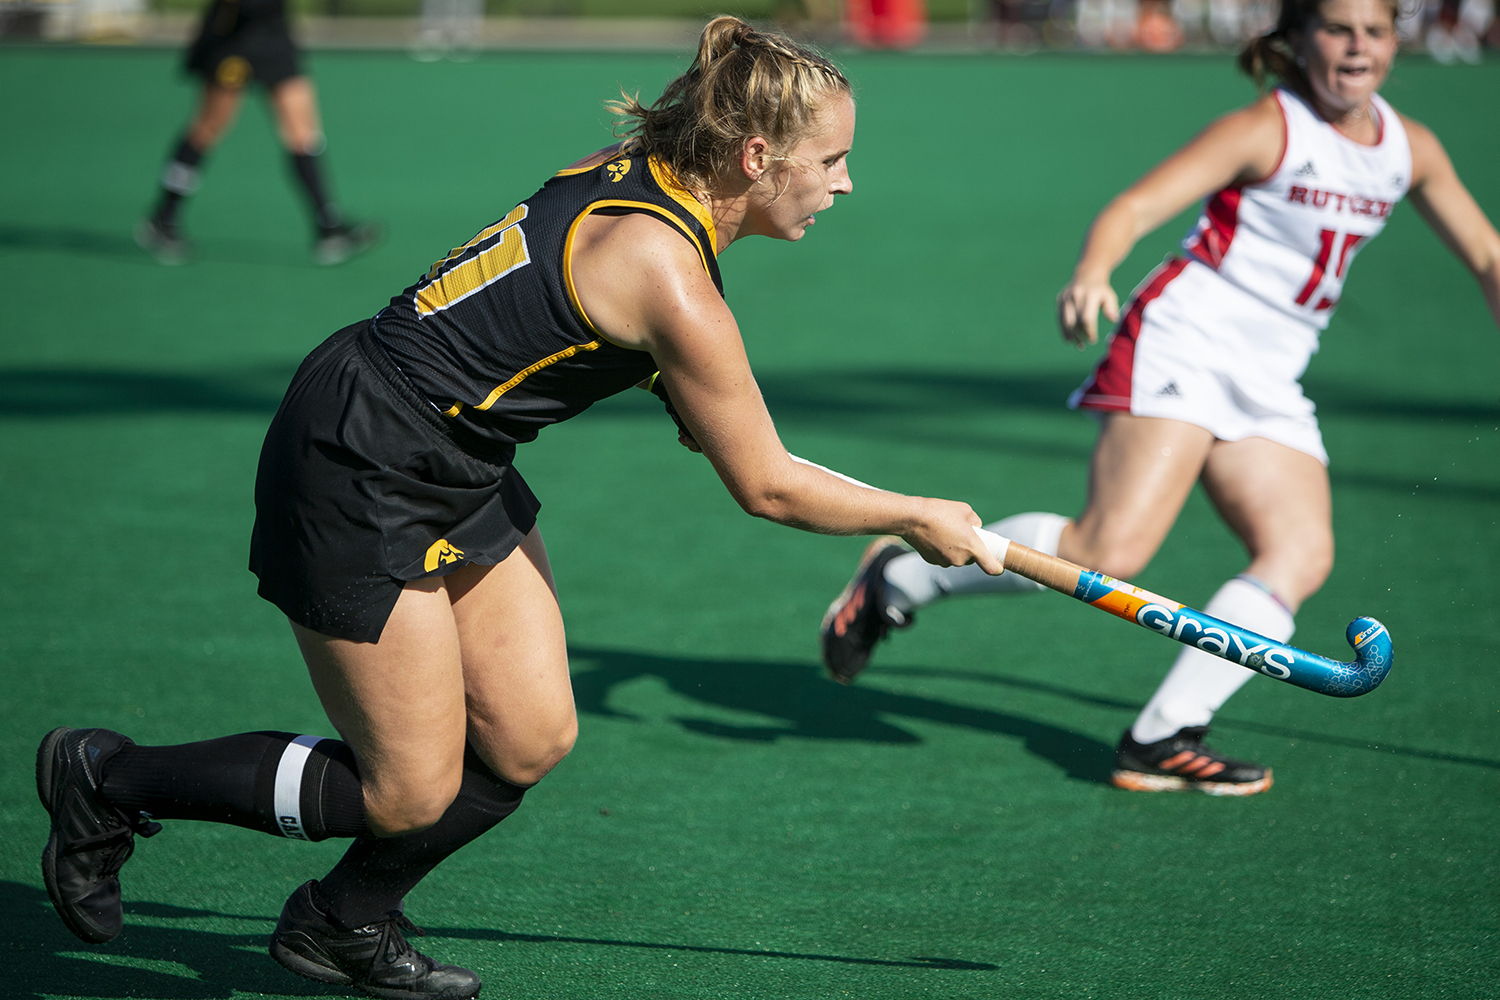 Iowa's Katie Birch passes the ball during the Iowa field hockey match against Rutgers on Friday, Oct. 4, 2019 at Grant Field. The Hawkeyes beat the Scarlet Knights 2-1.